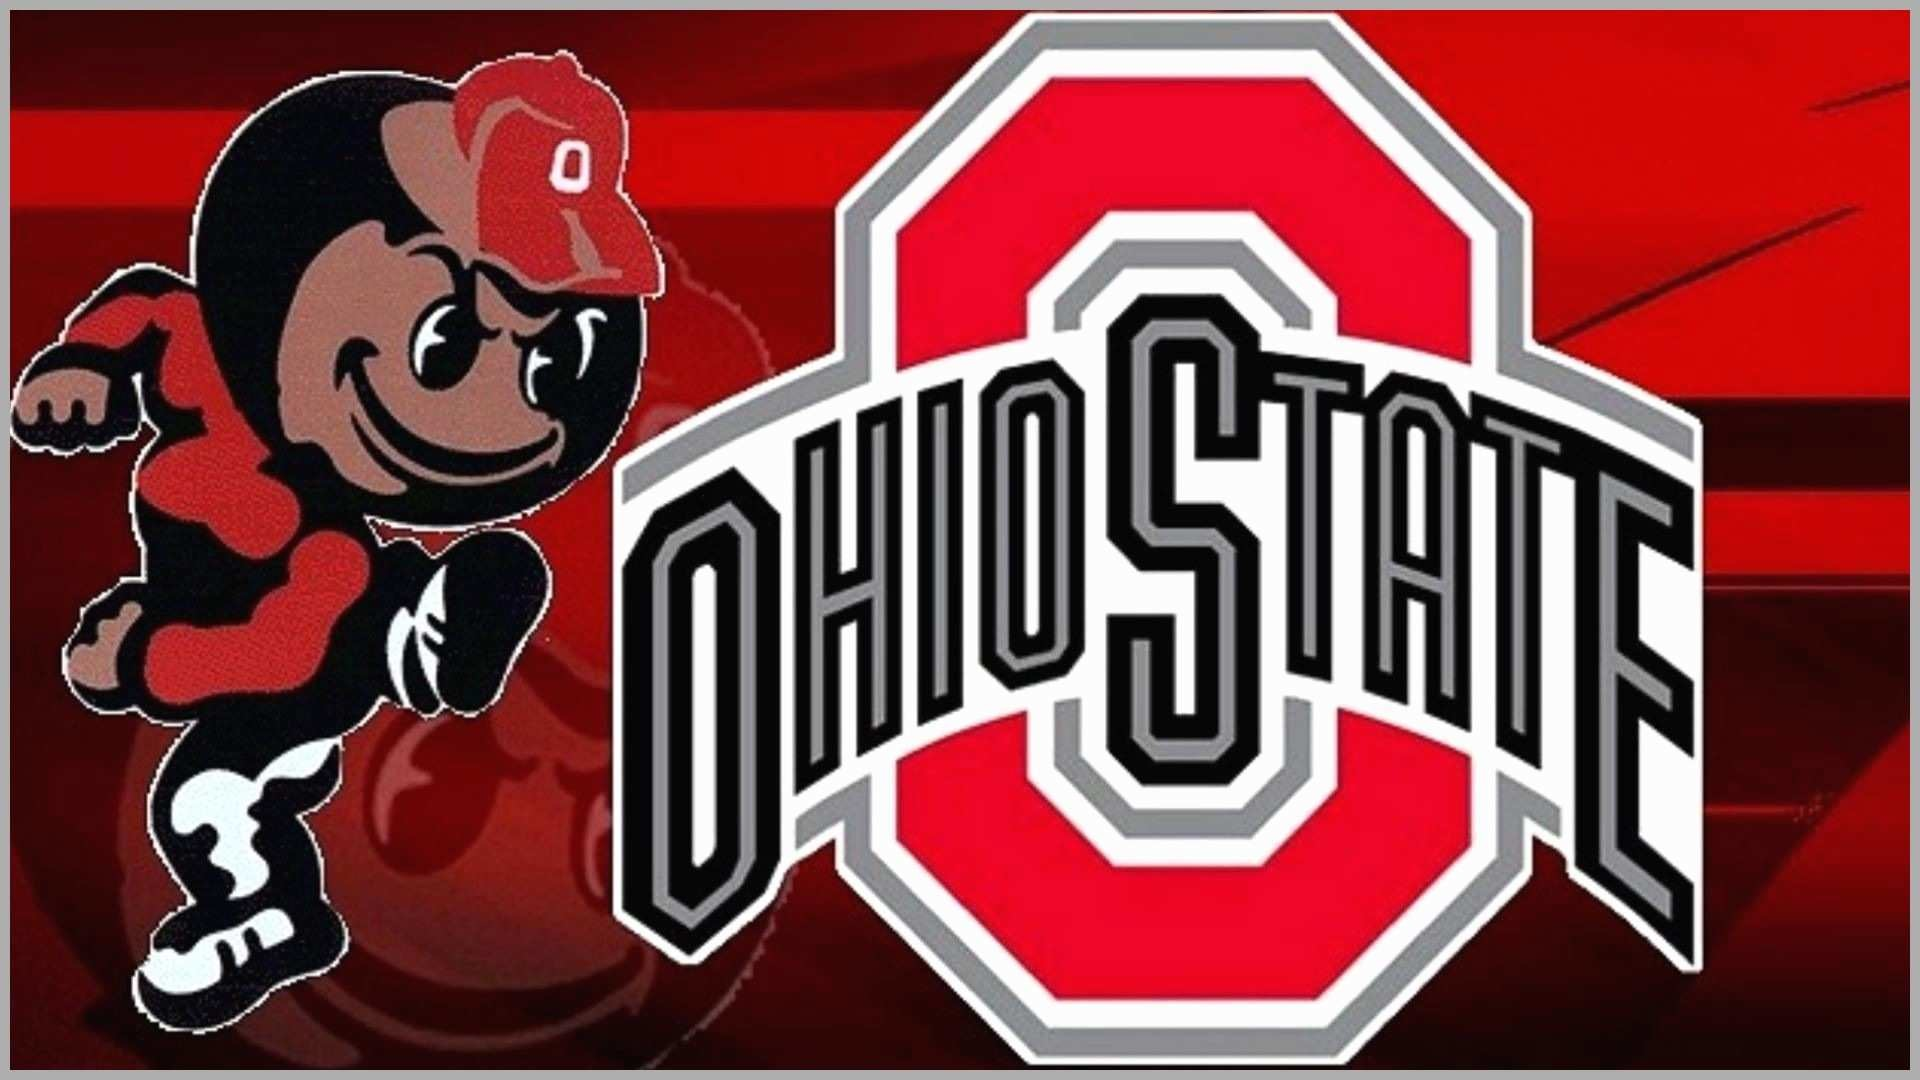 1920x1080 Ohio State Buckeyes Football Wallpapers Wallpaper Cave